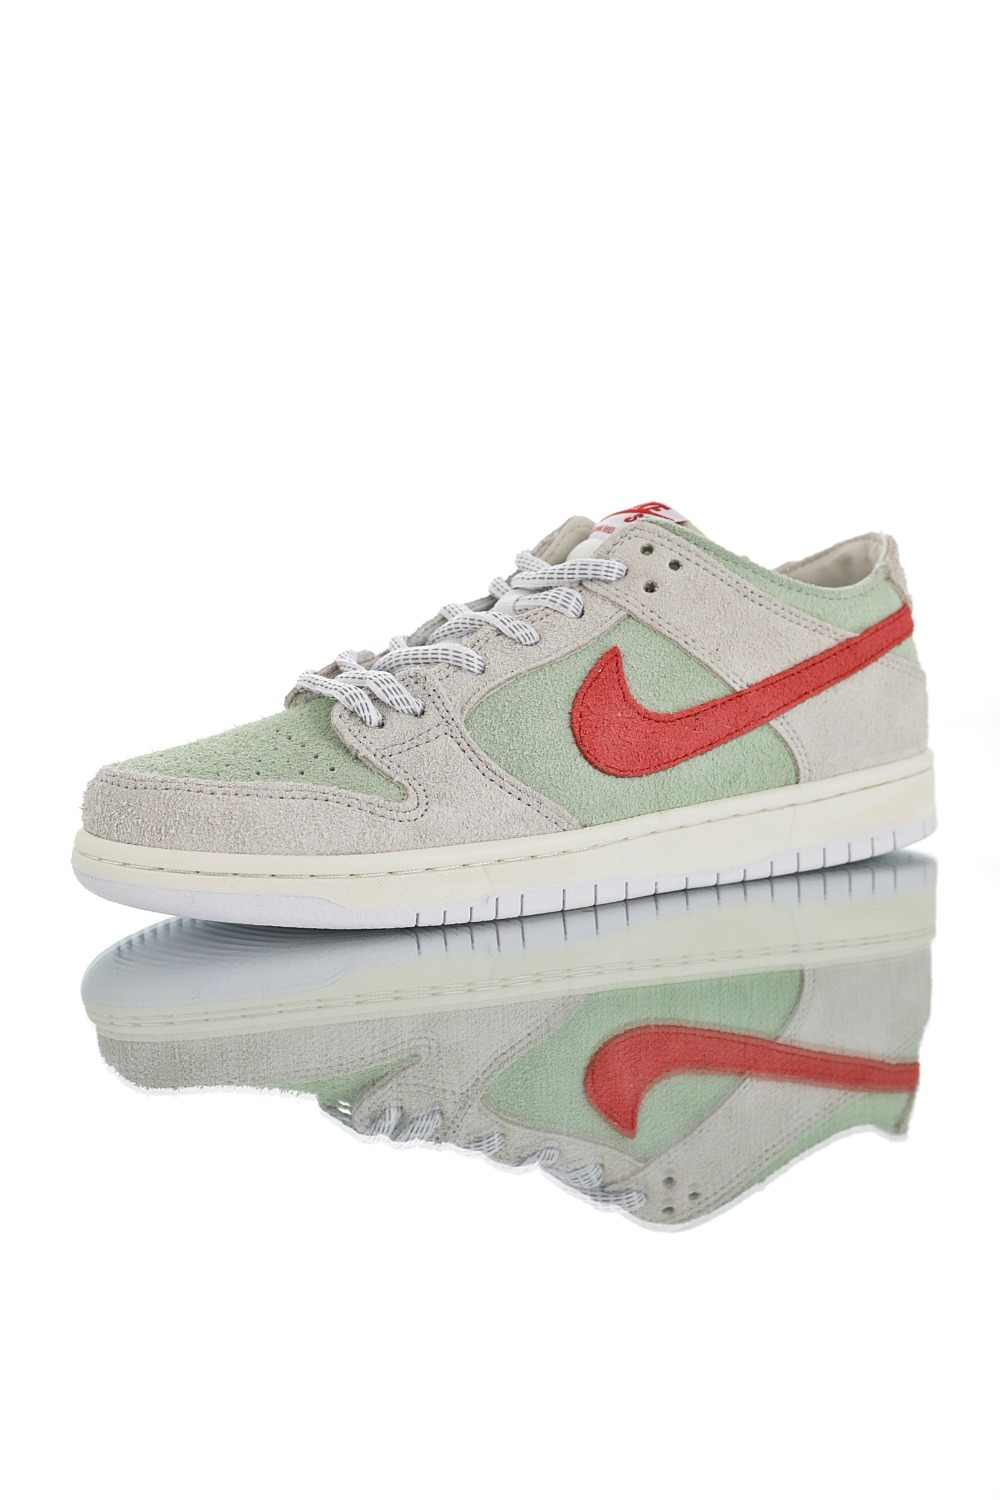 def808308ef New High Quality Nike Sb Dunk Low Men's Skateboarding Shoes Outdoor  Sneakers Breathable Lightweight outdoor shoes AQ2206-166